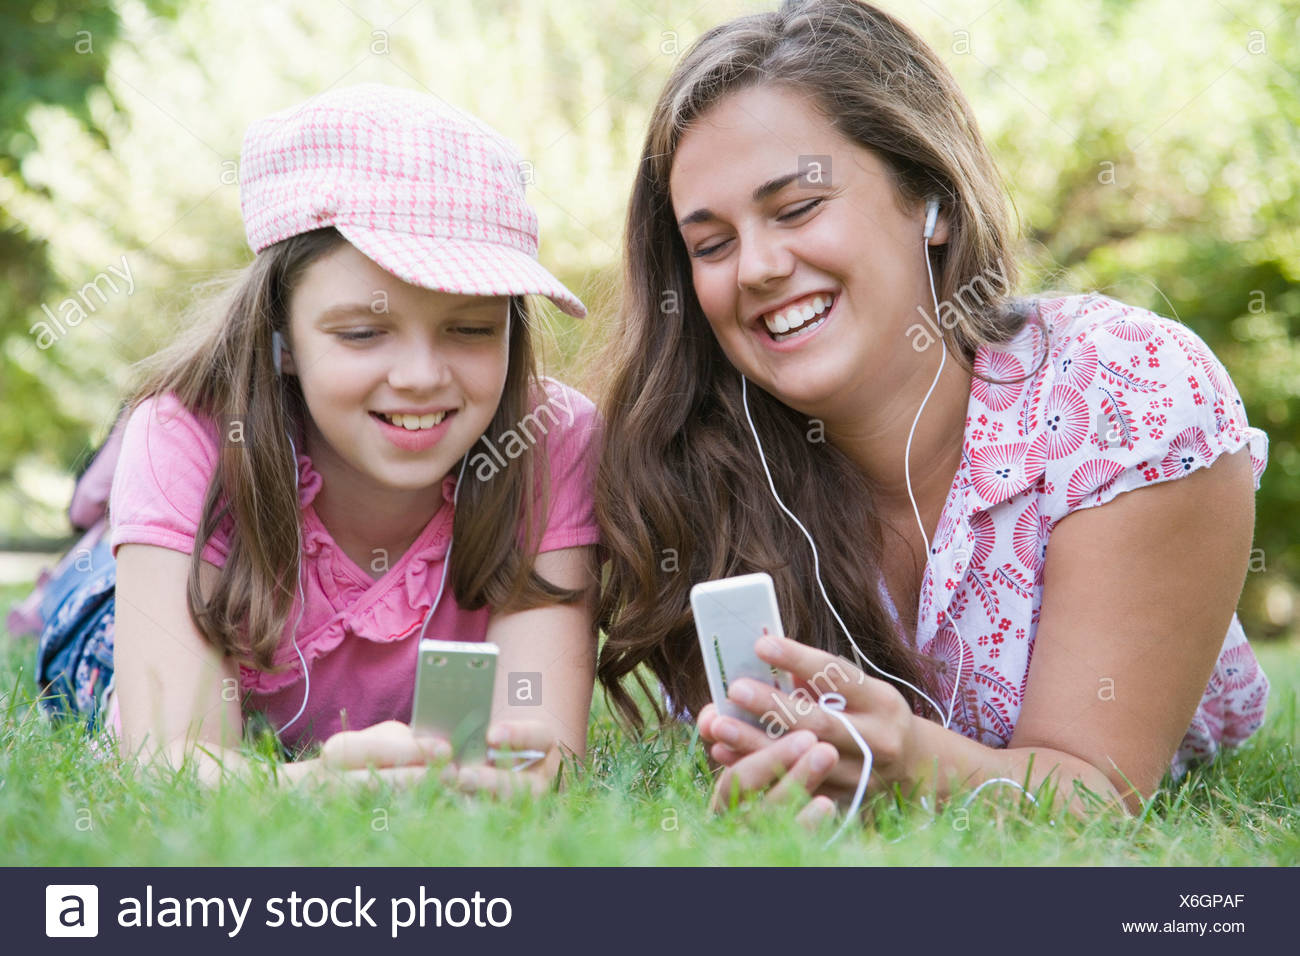 Young woman and a girl lying on grass in a park and listening to MP3 players - Stock Image